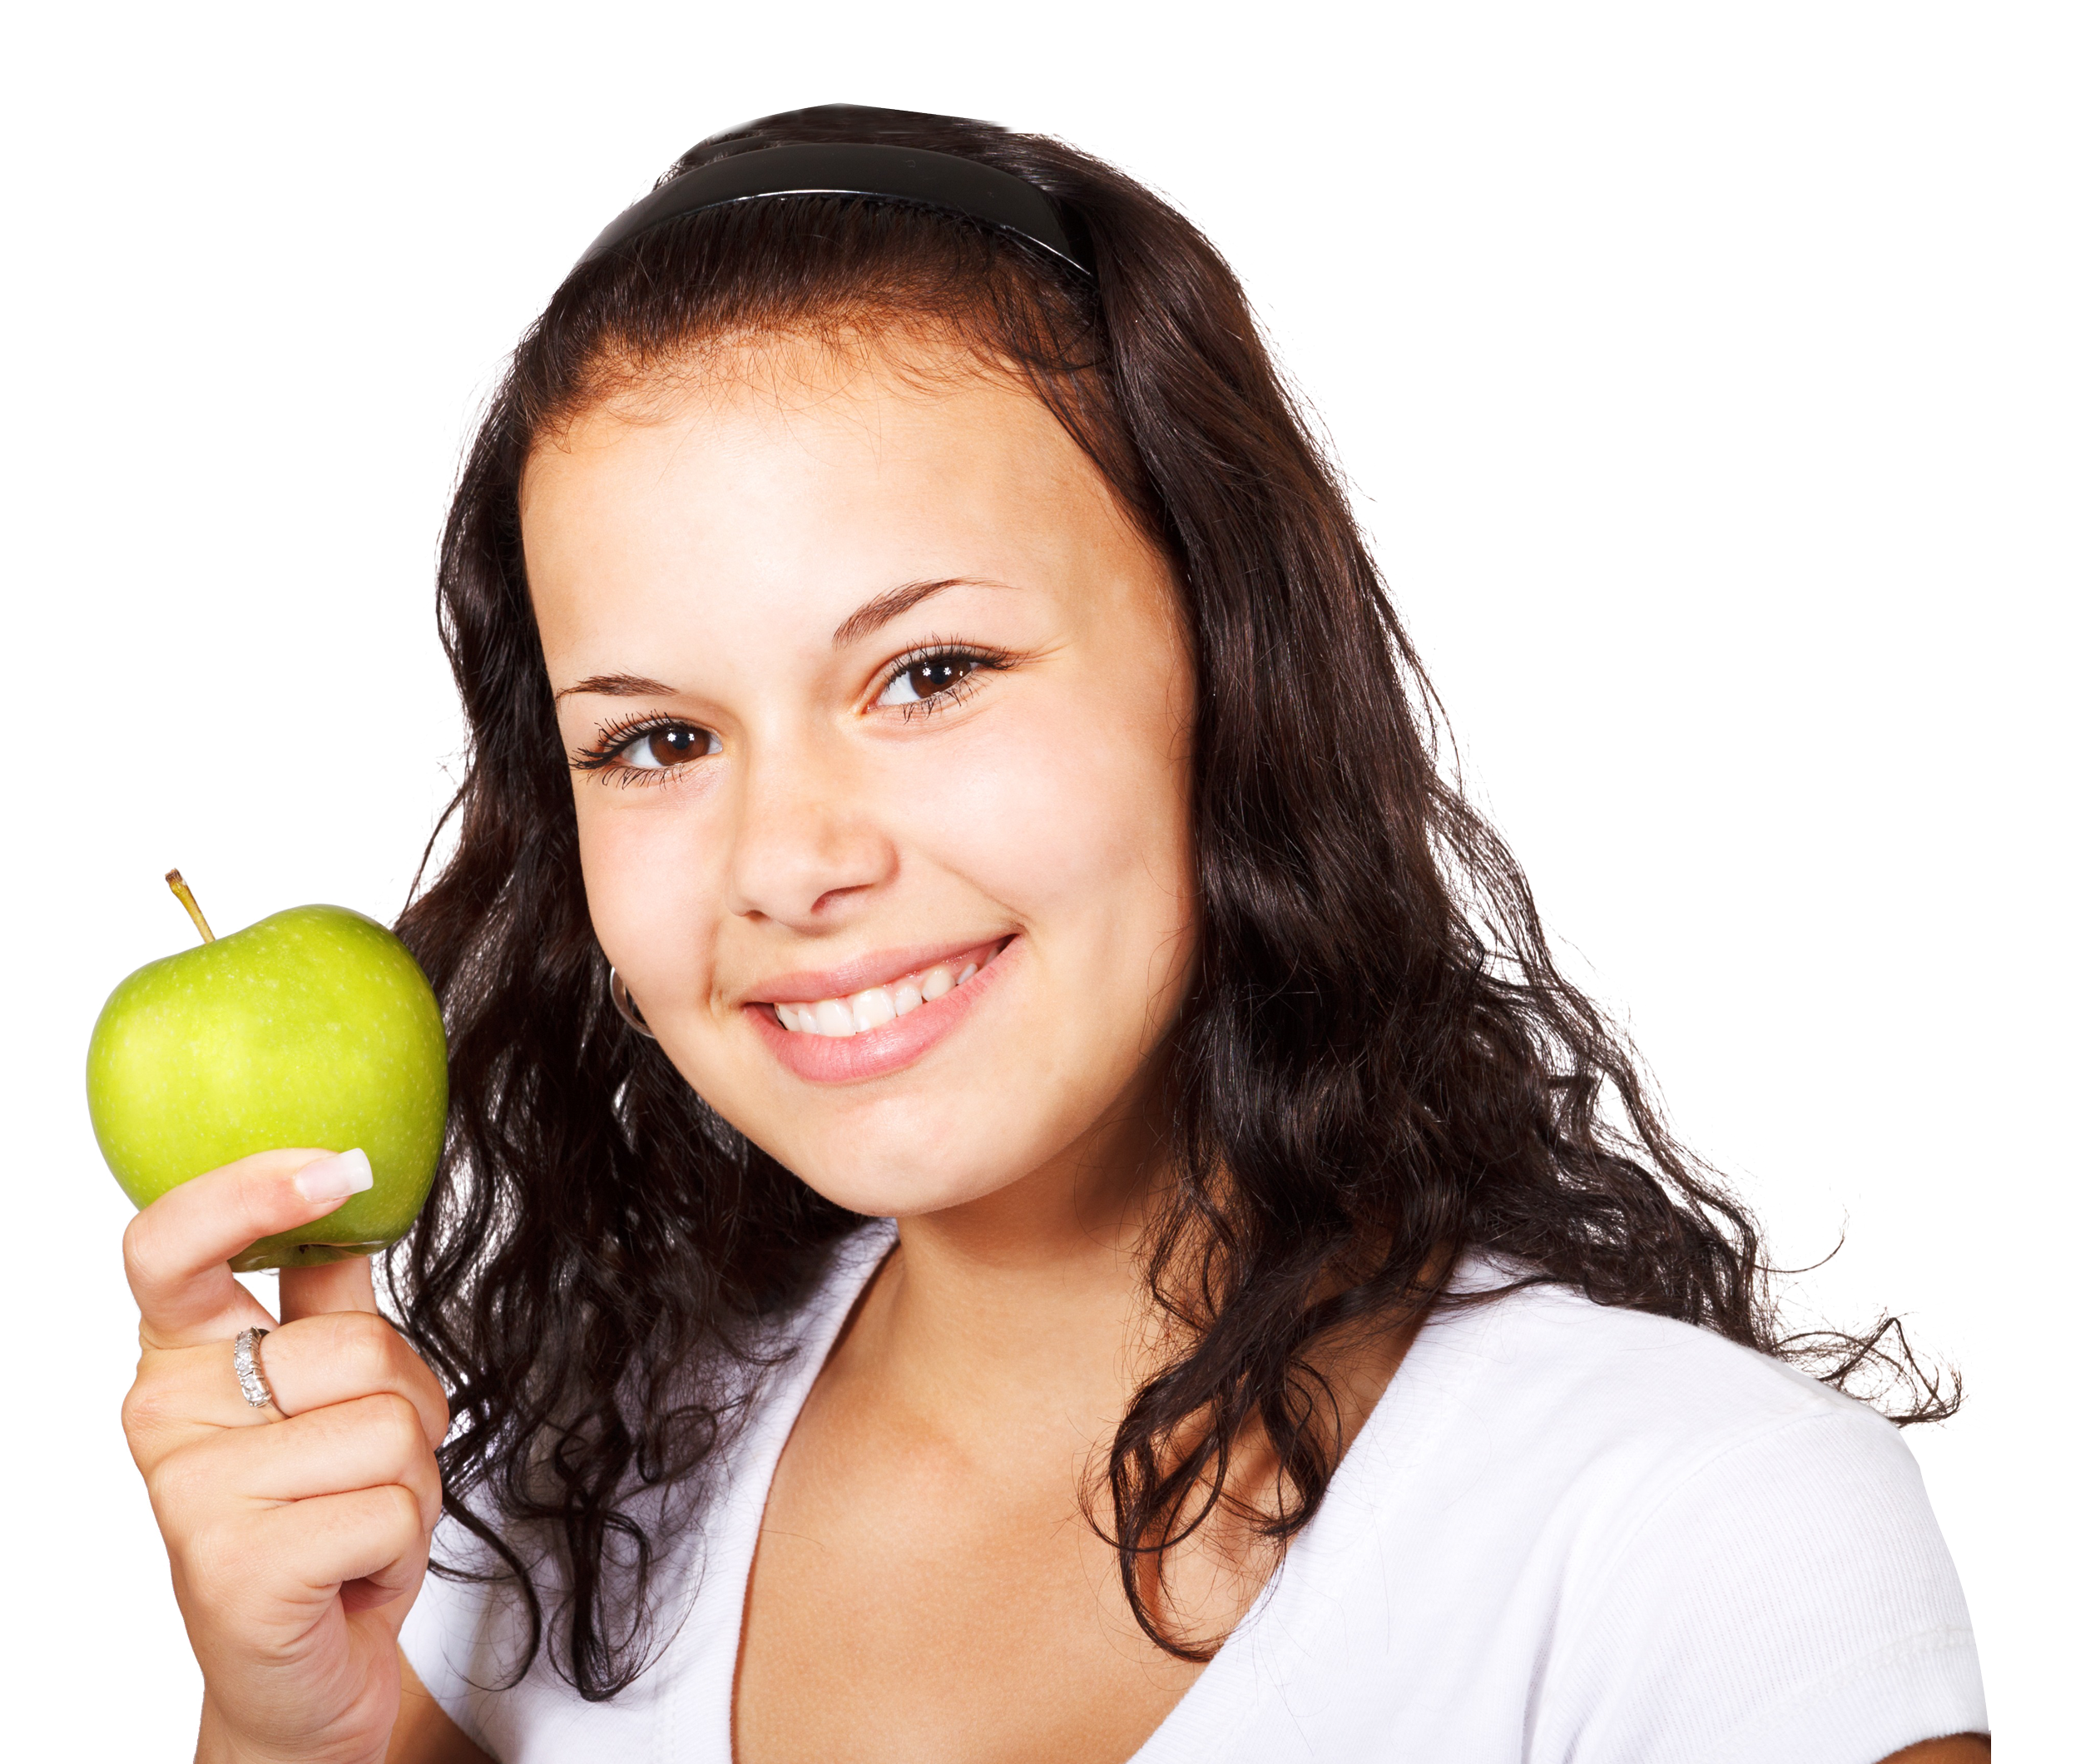 Girl with Red Apple PNG Image